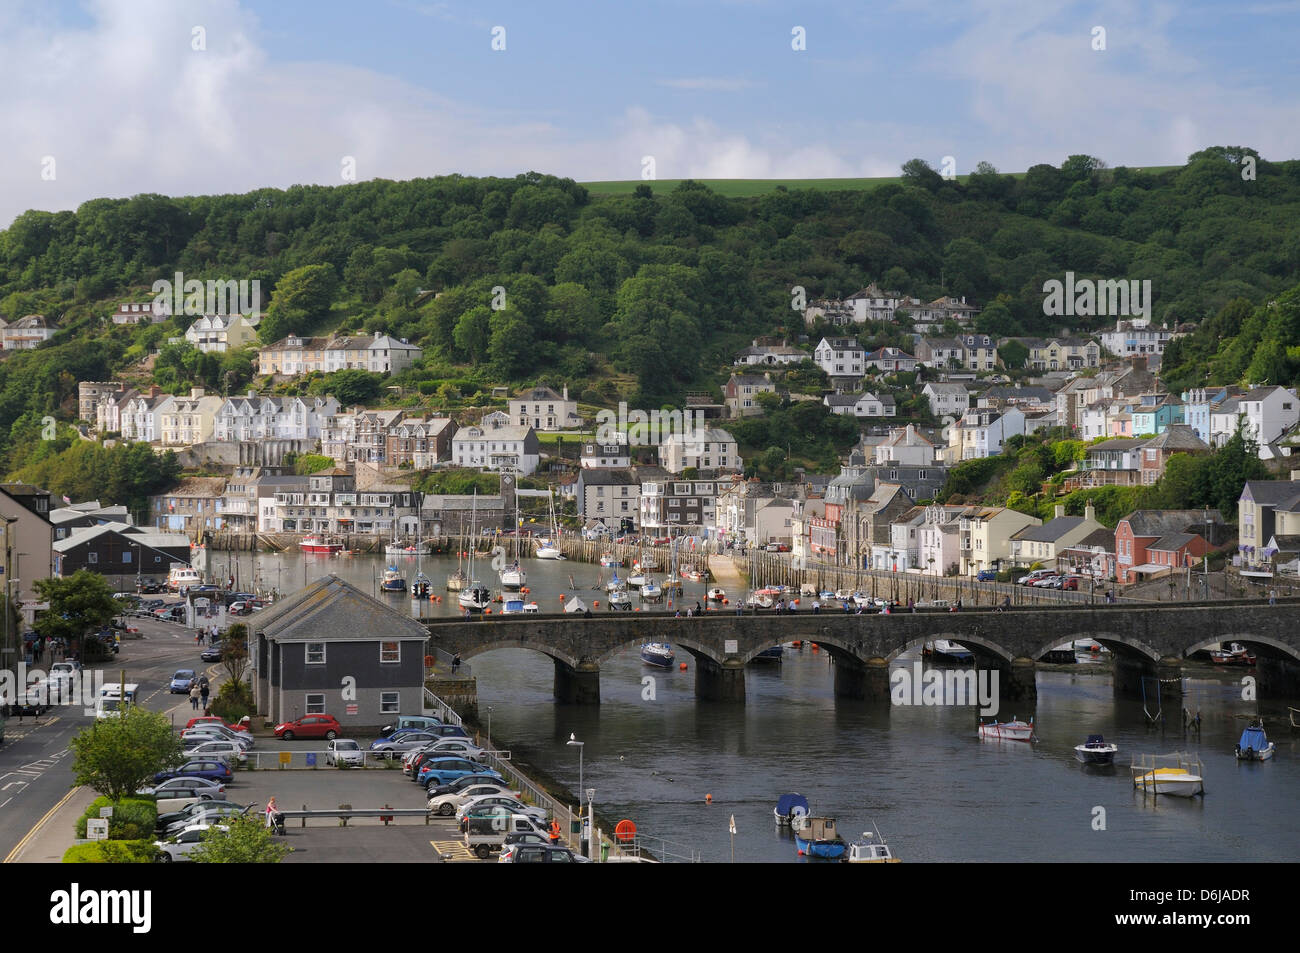 Overview of Looe harbour and bridge linking East and West Looe, Cornwall, England, United Kingdom, Europe - Stock Image